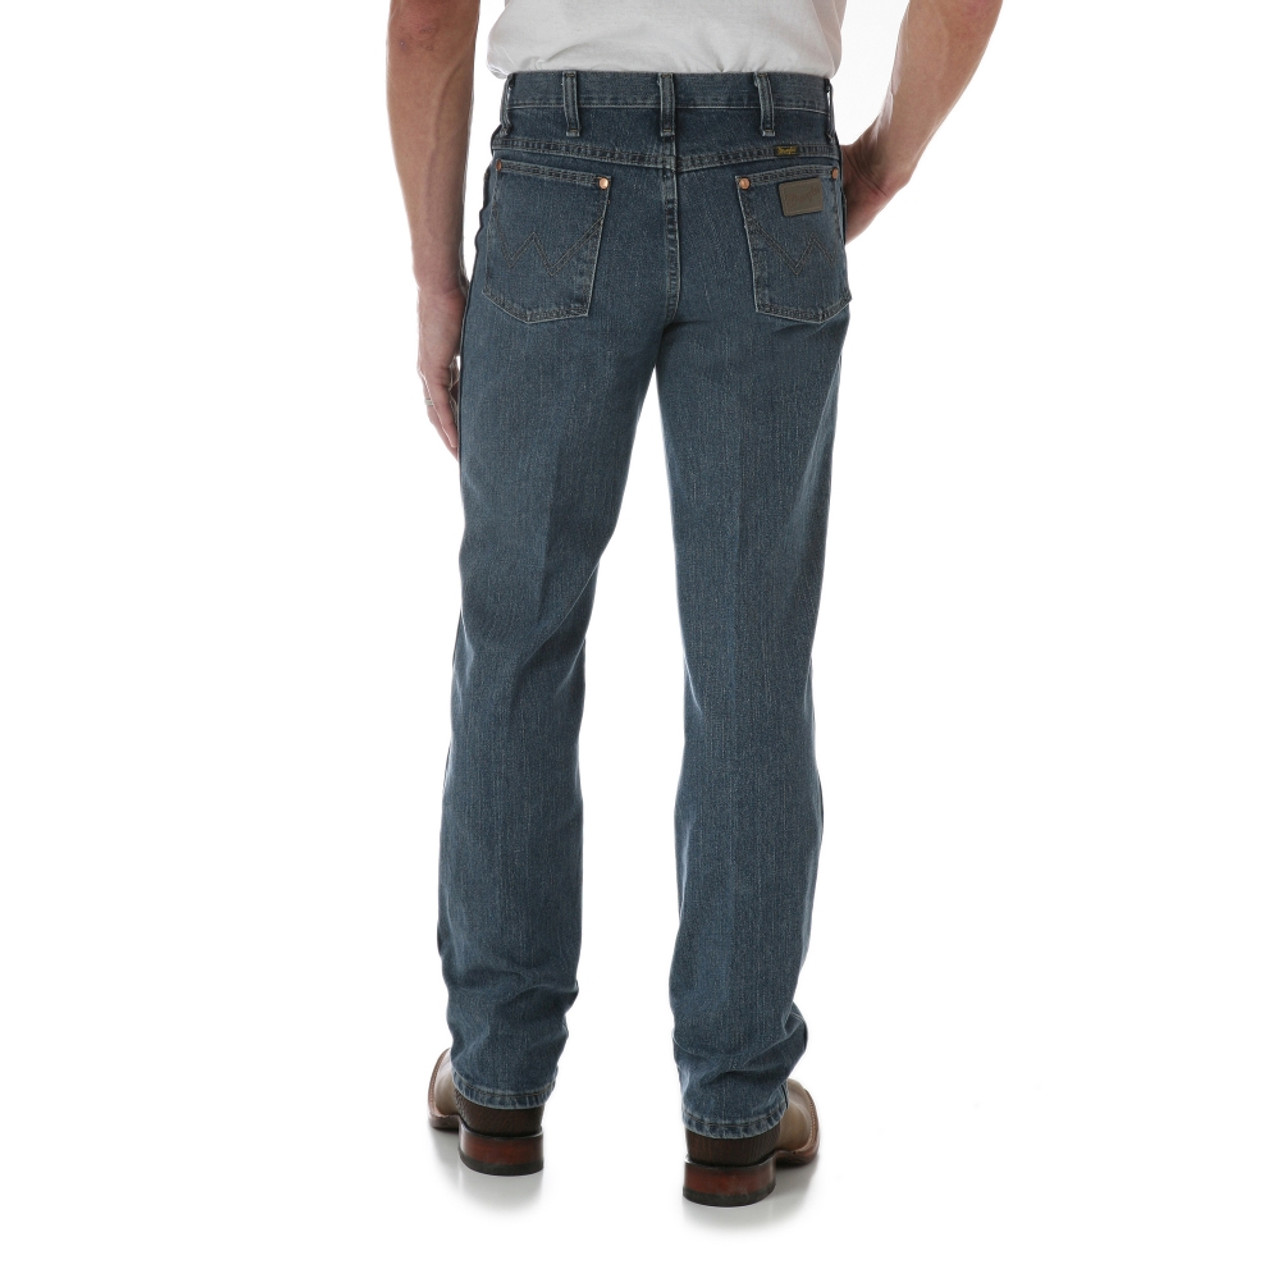 c981568c Men's Wrangler Rough Stone Slim Fit ProRodeo Boot Cut Jeans - Herbert's  Boots and Western Wear